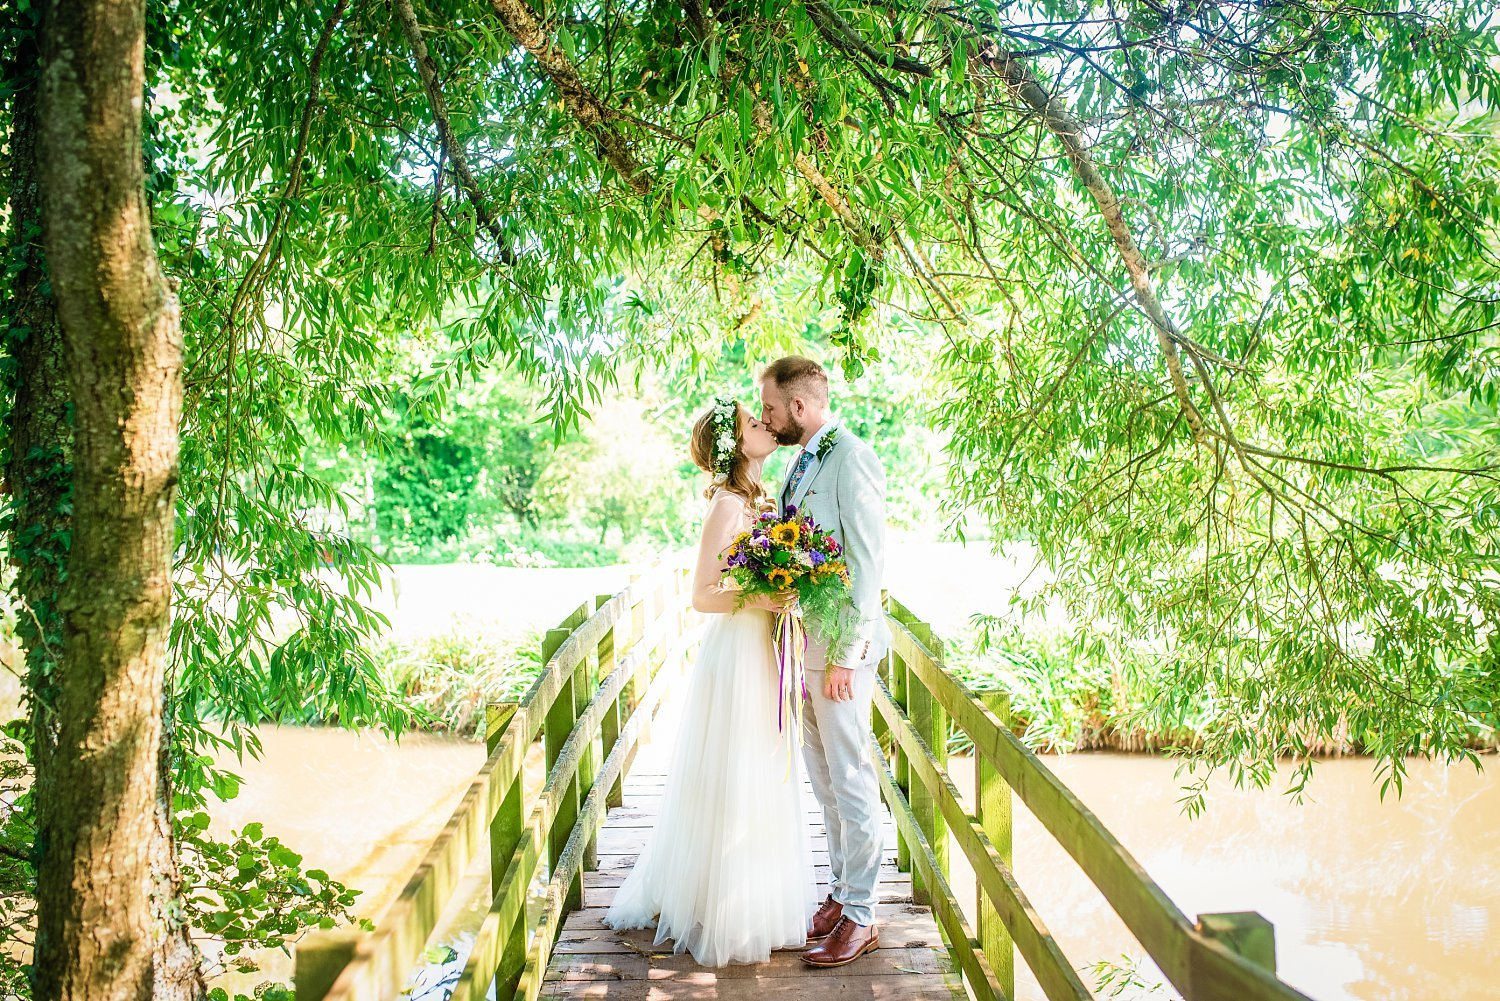 Farnham Wedding Photographer - bride and groom are standing on the wooden bridge. they are kissing